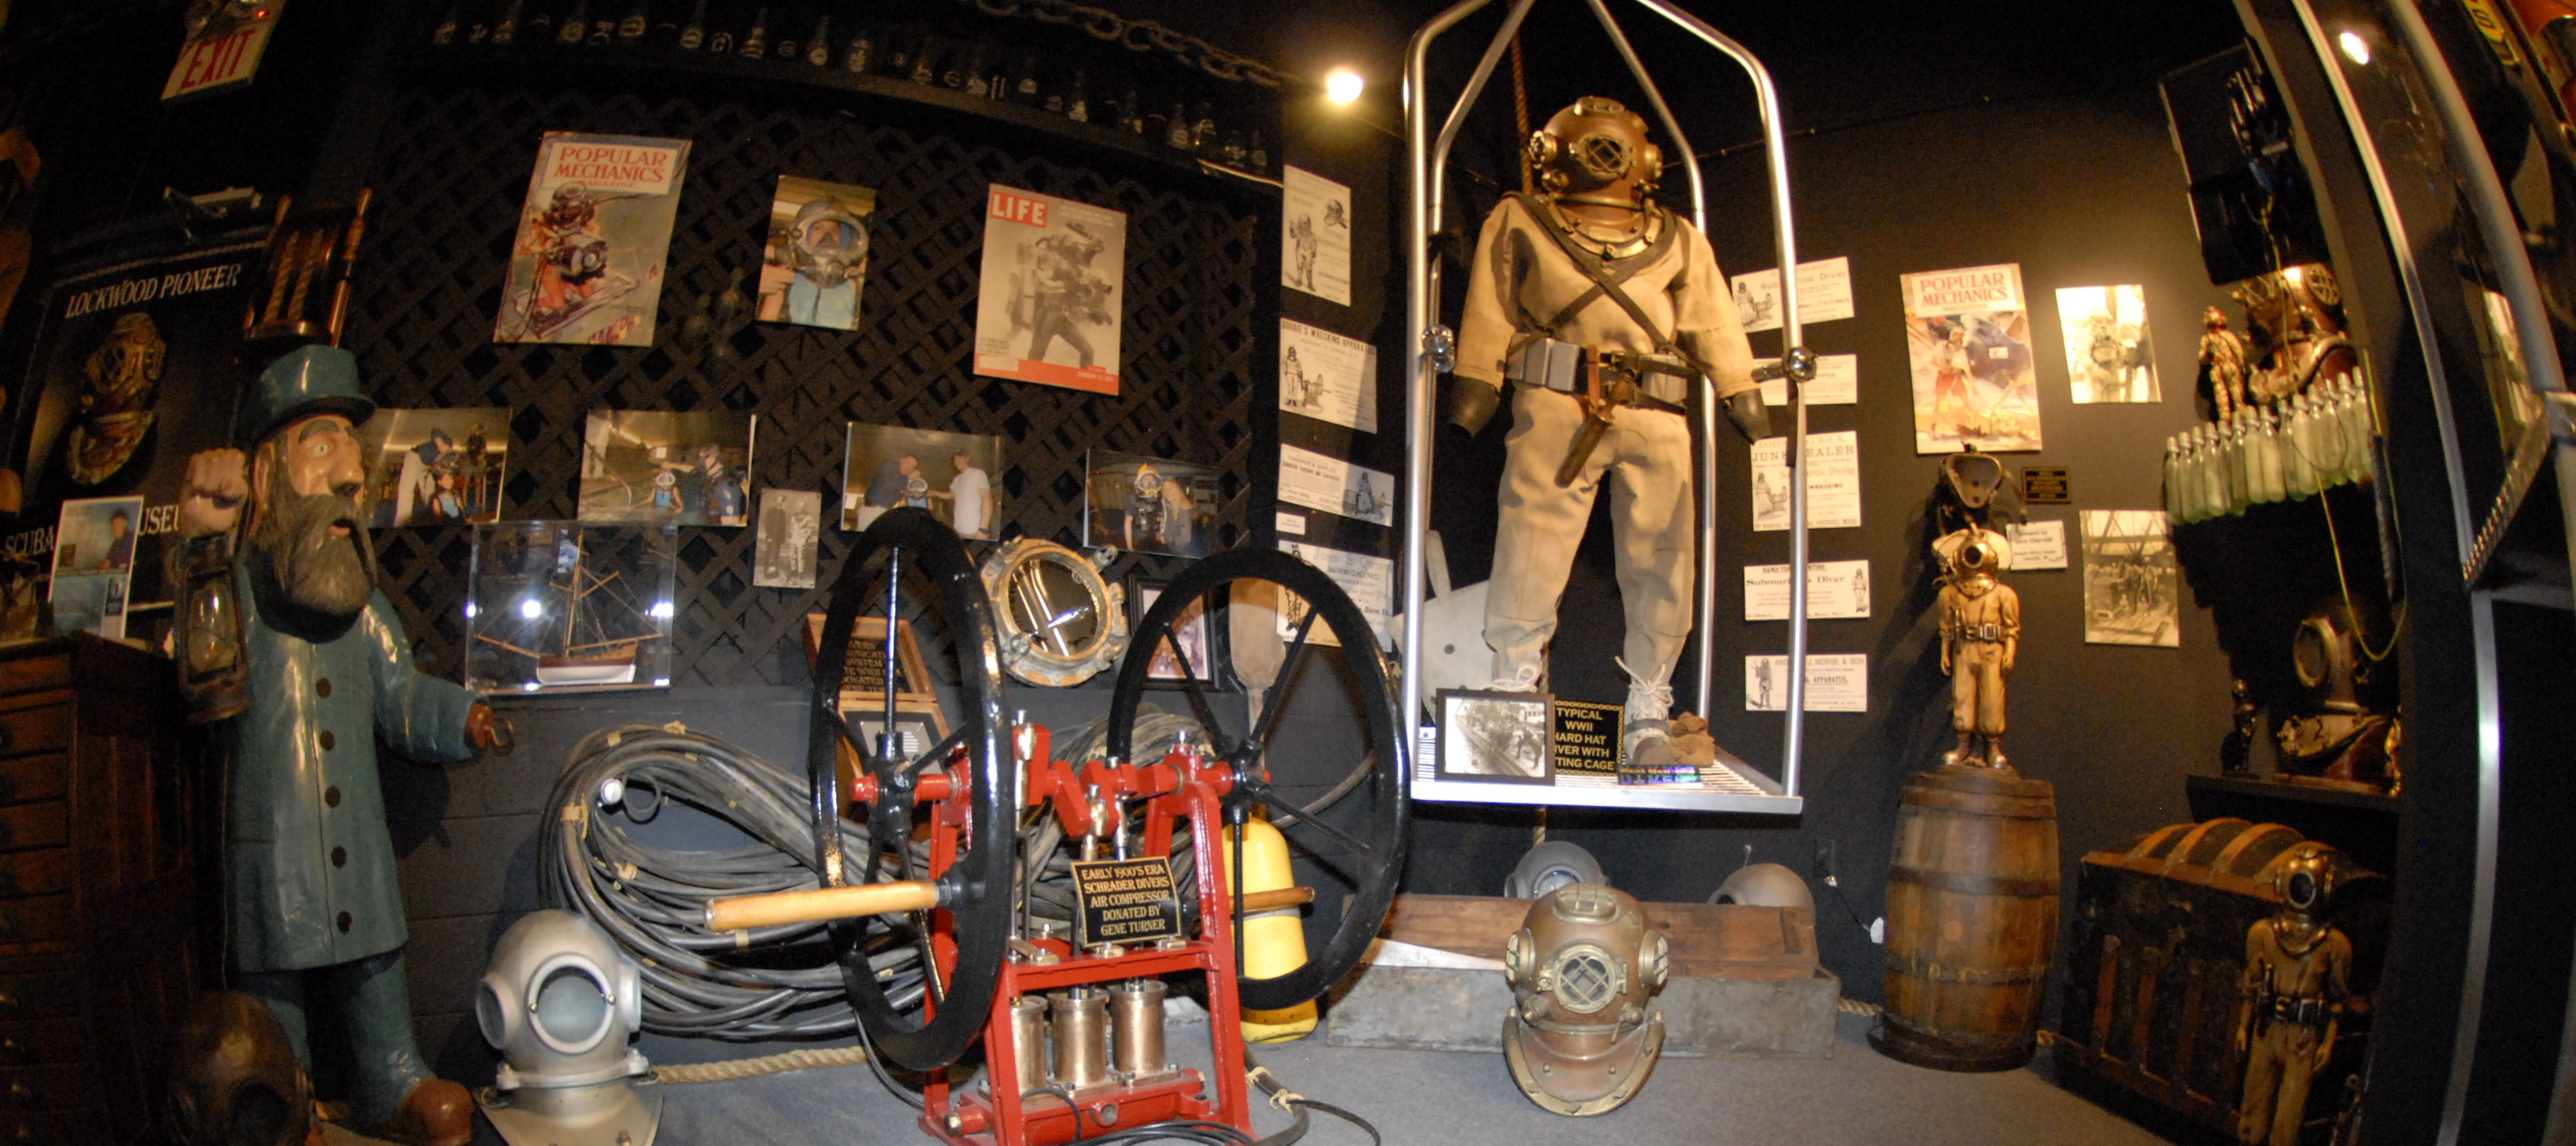 LOCKWOOD PIONEER SCUBA DIVING MUSEUM